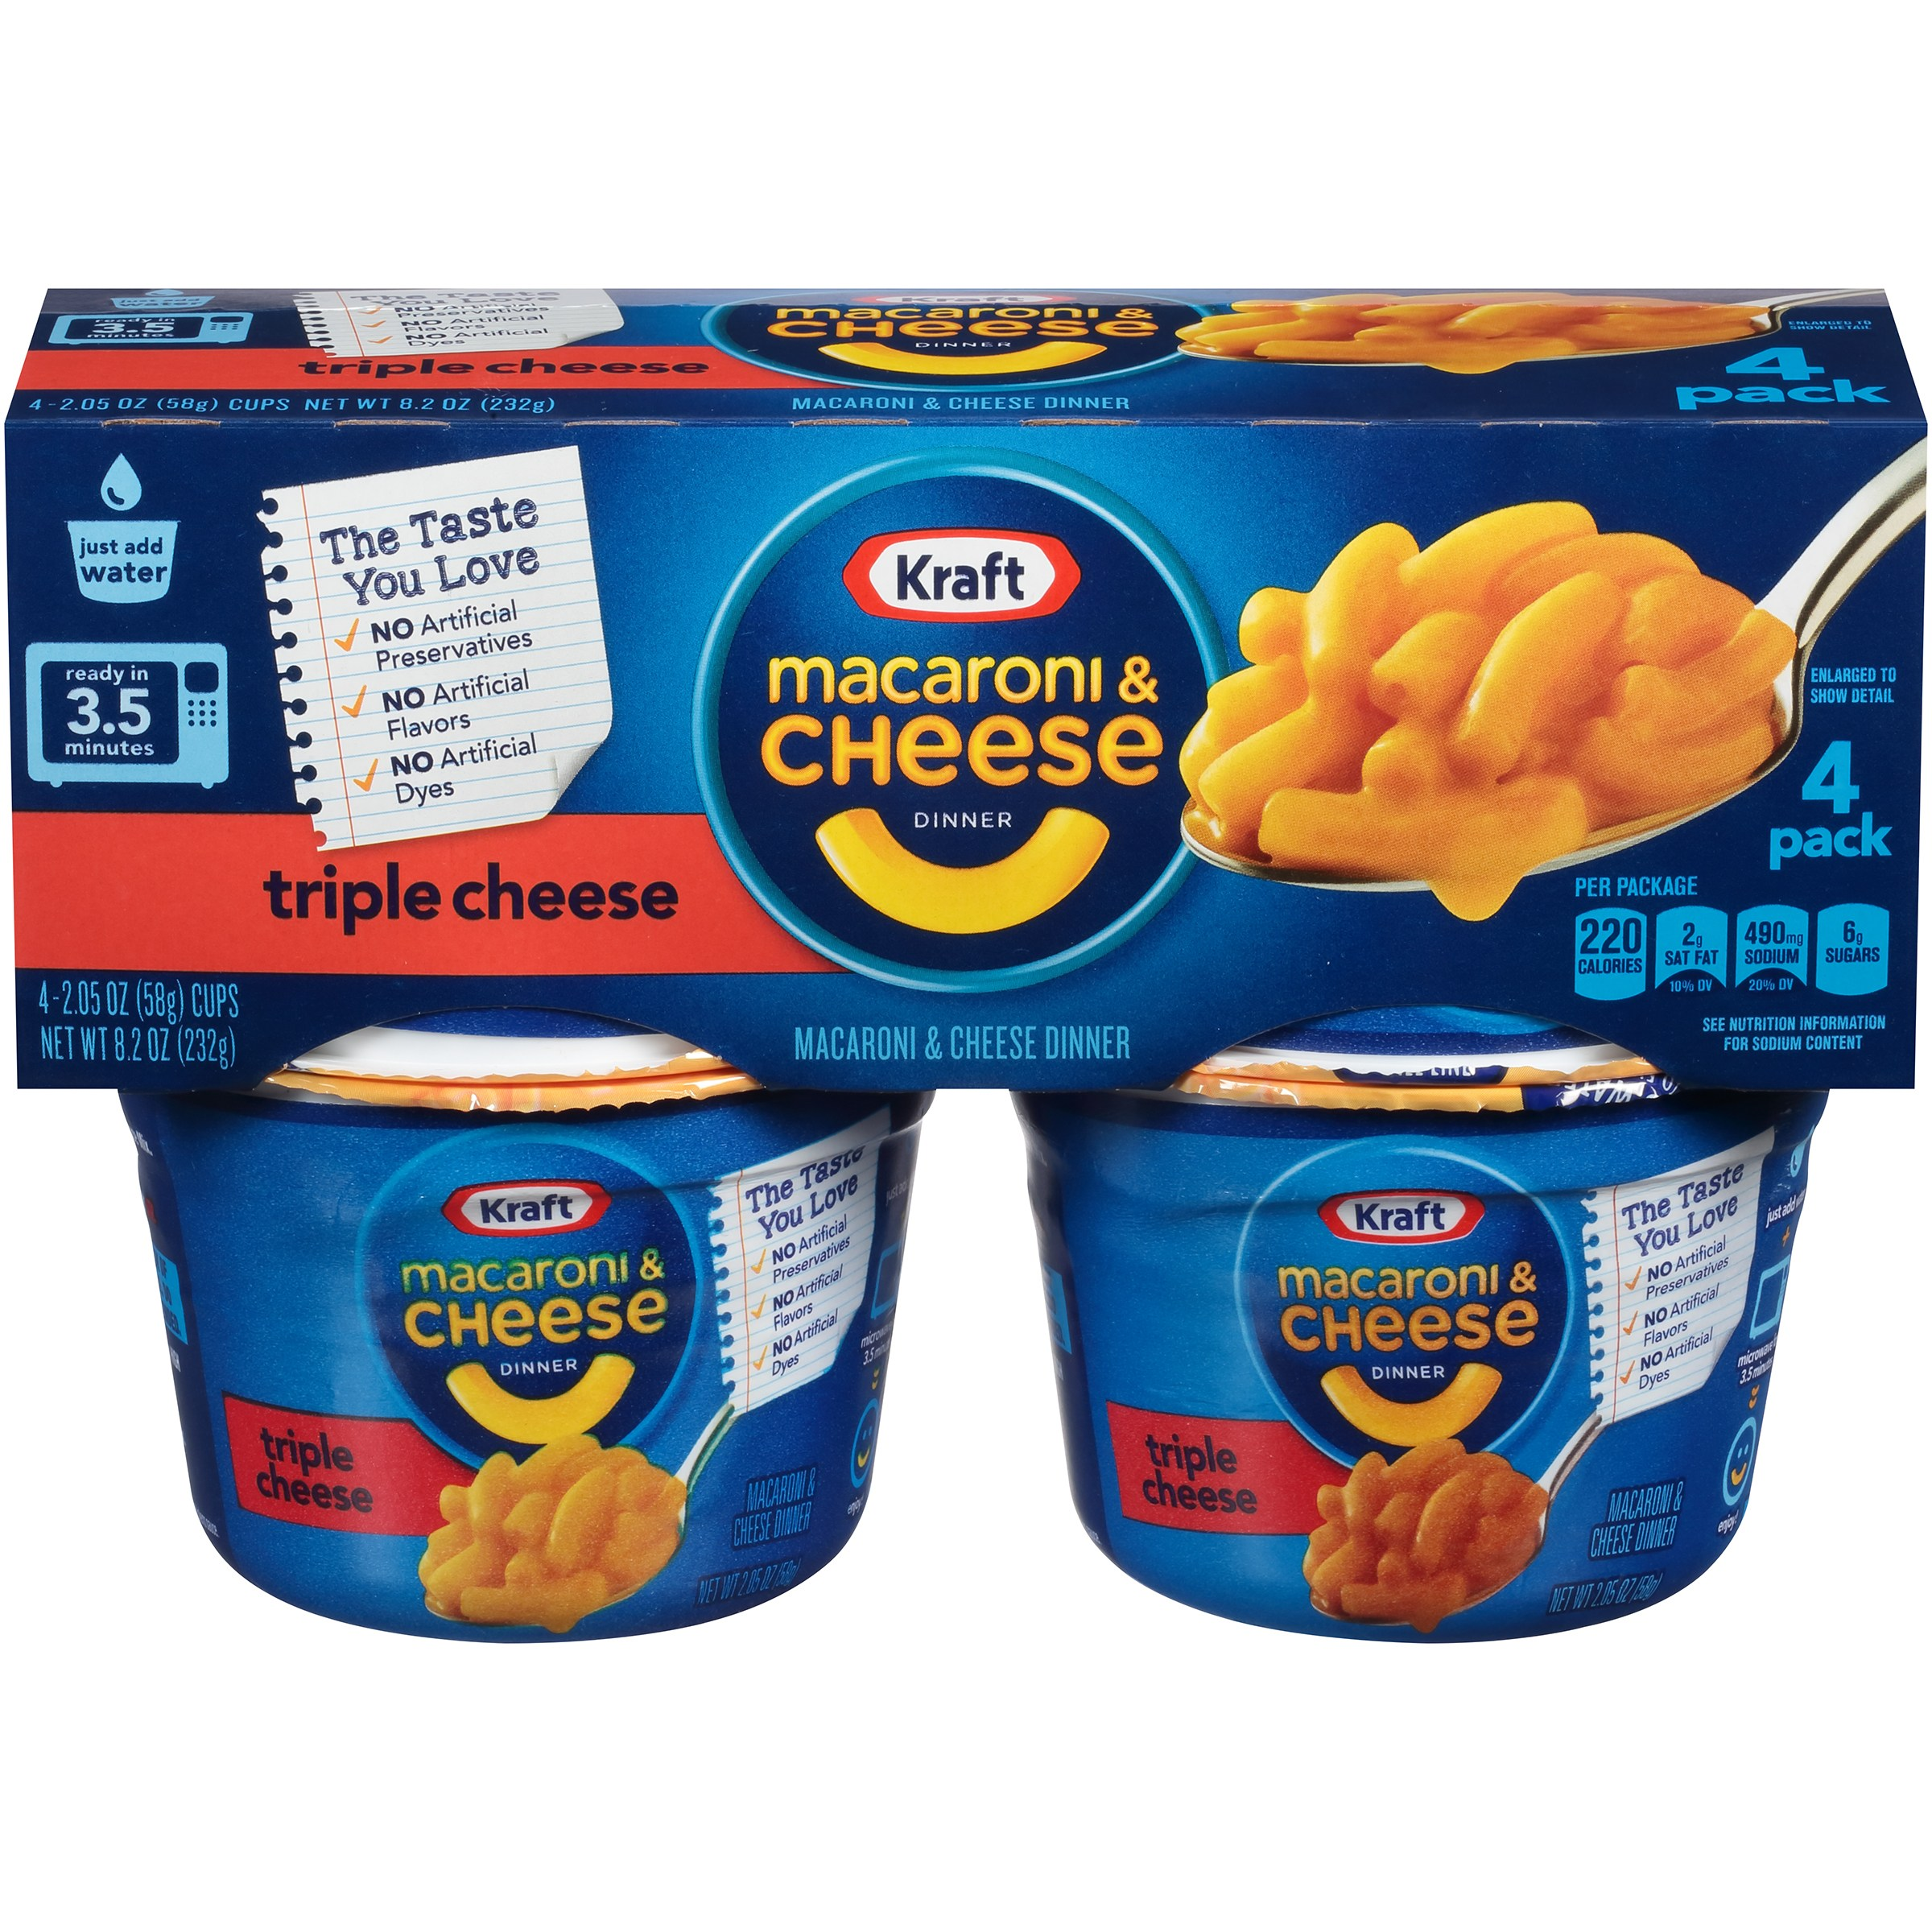 Kraft Triple Cheese Macaroni & Cheese Dinner 4-2 oz. Microcups